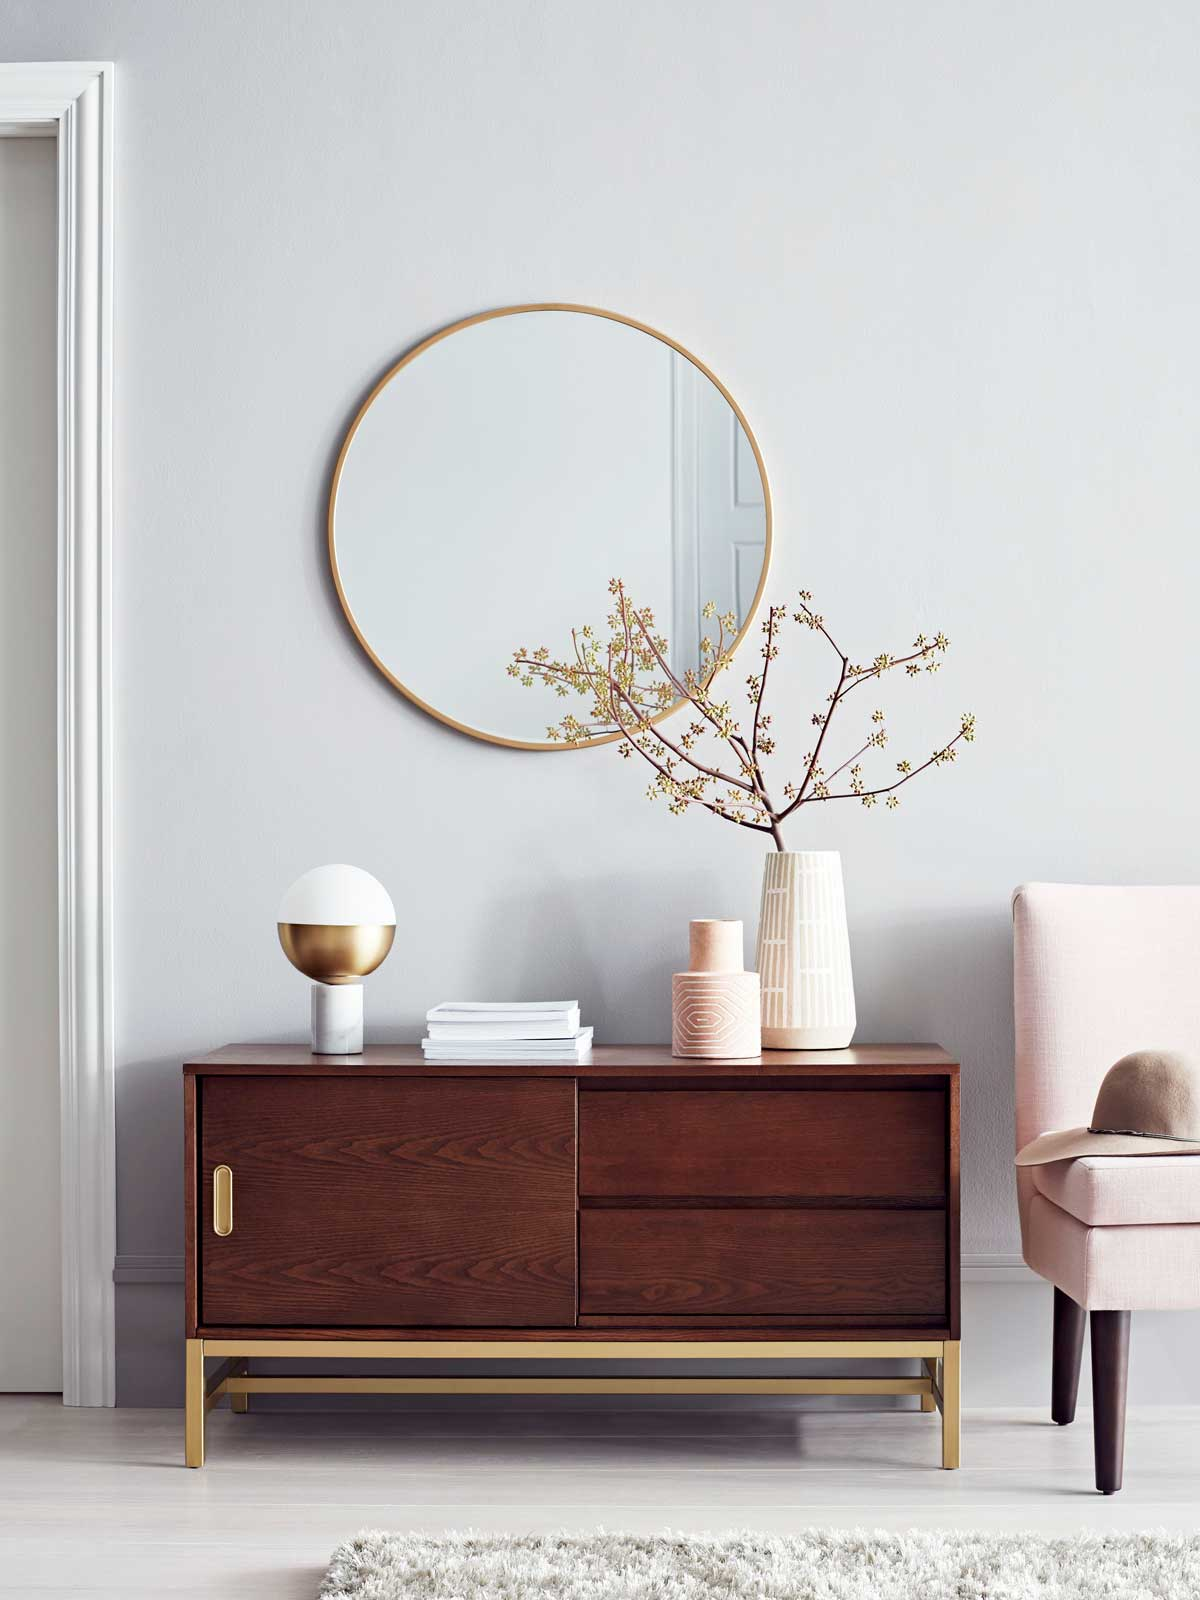 the best target new project thou swell crush blush accent table modern sideboard and round mirror with slipper chair from exterior nautical decor windham furniture bay marble